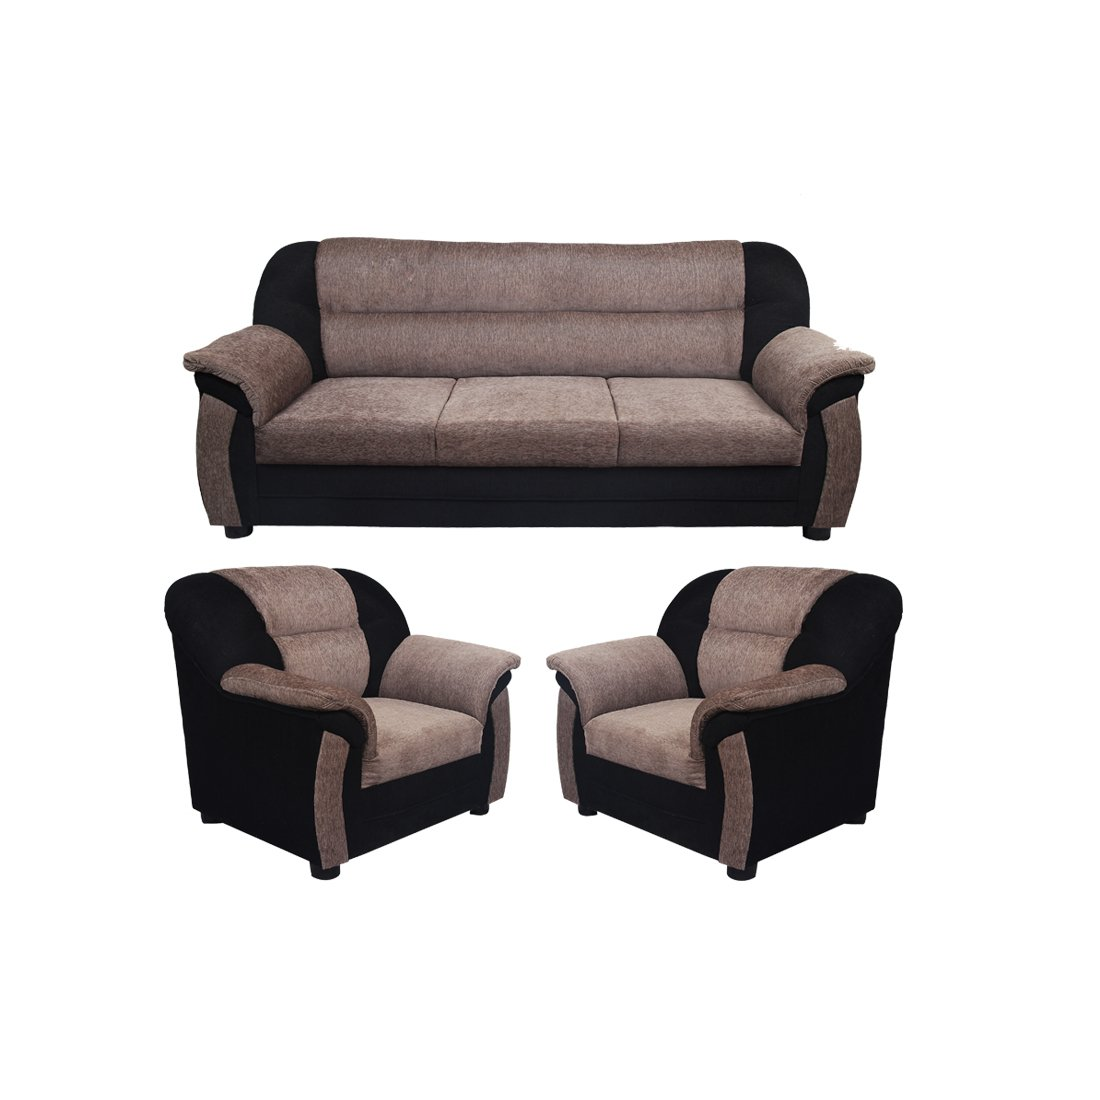 Bellia Fabric Sofa Set, 3+1+1(Grey)